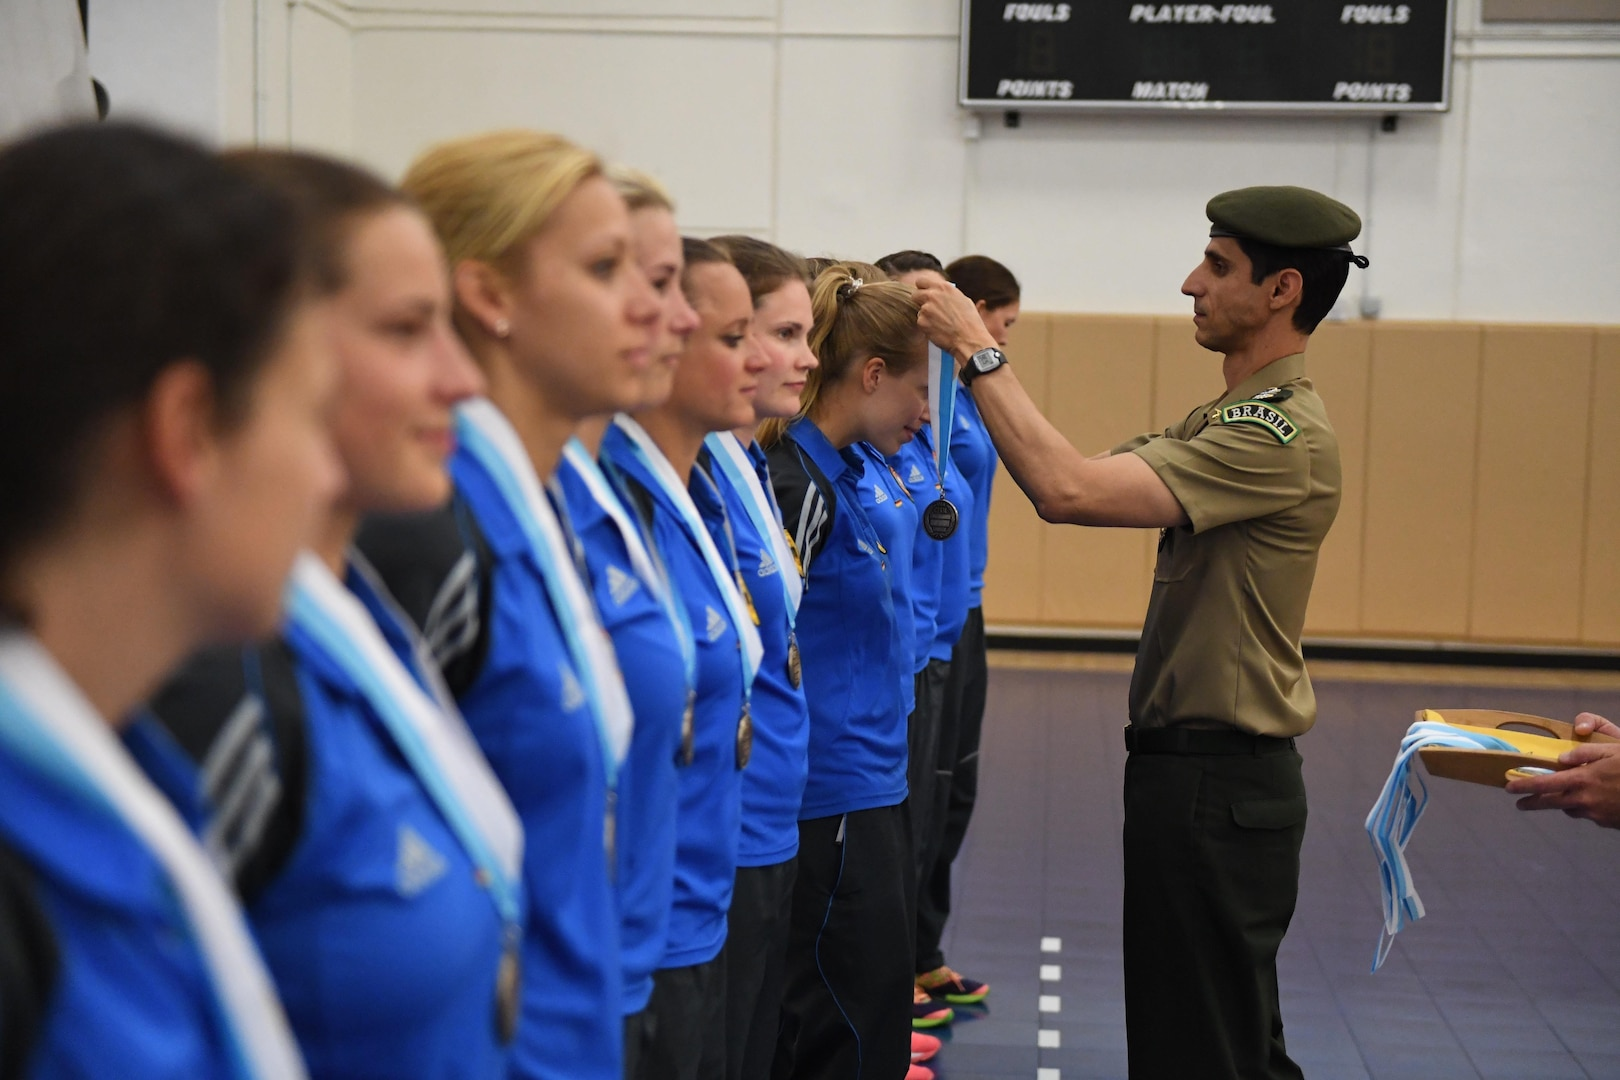 Germany wins bronze of the 18th Conseil International du Sport Militaire (CISM) World Women's Volleyball Military Championship on 9 June 2017 at Naval Station Mayport, Florida.